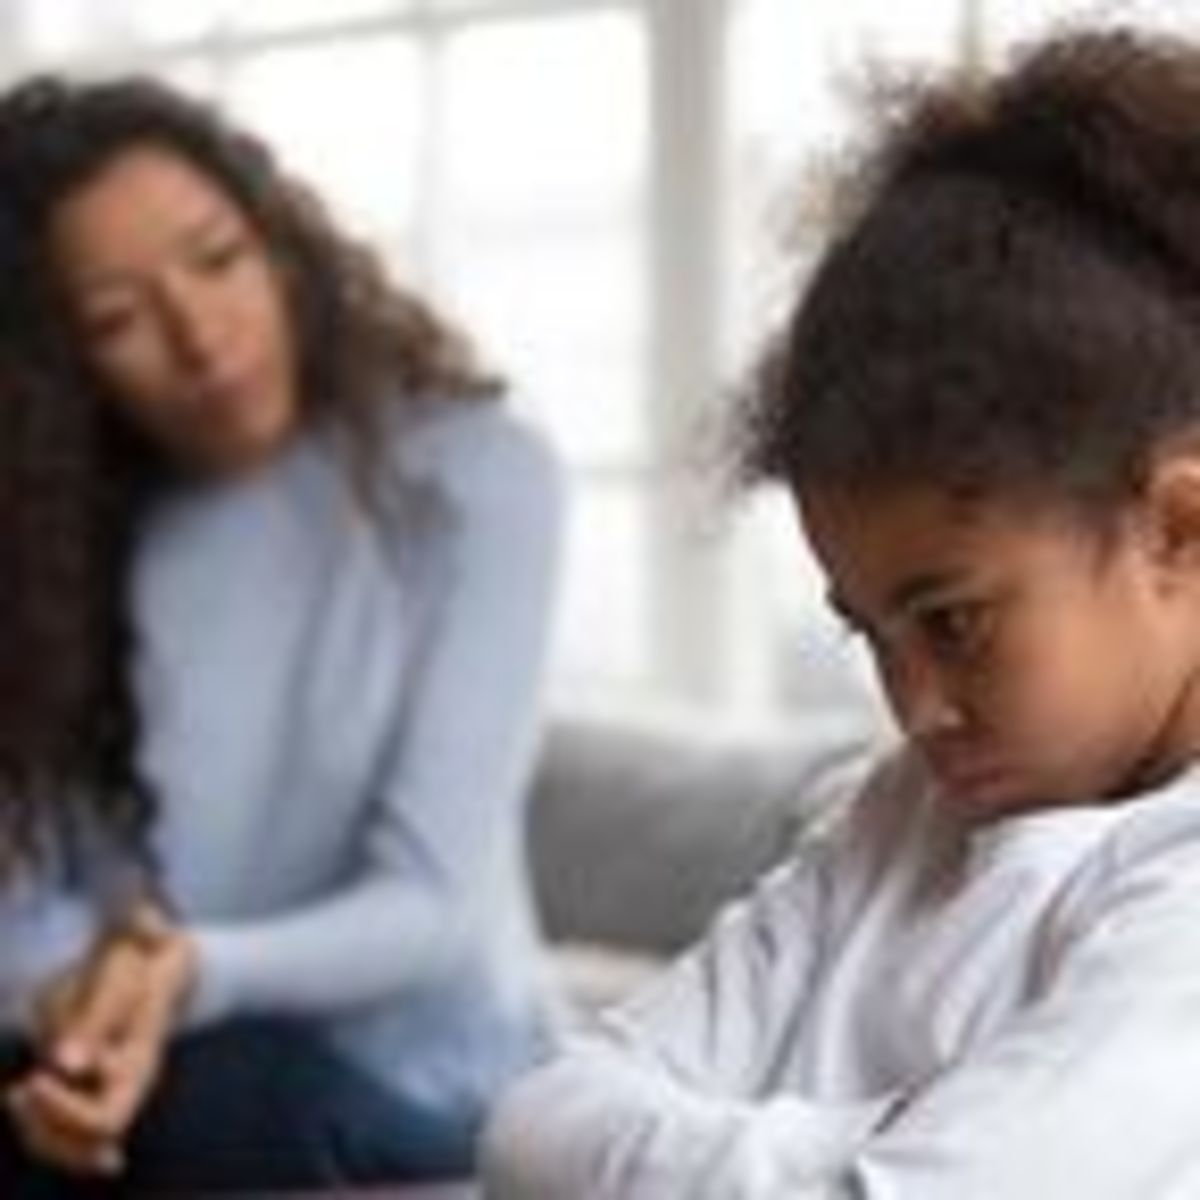 What If Your Child Chooses to Do Wrong? | Psychology Today